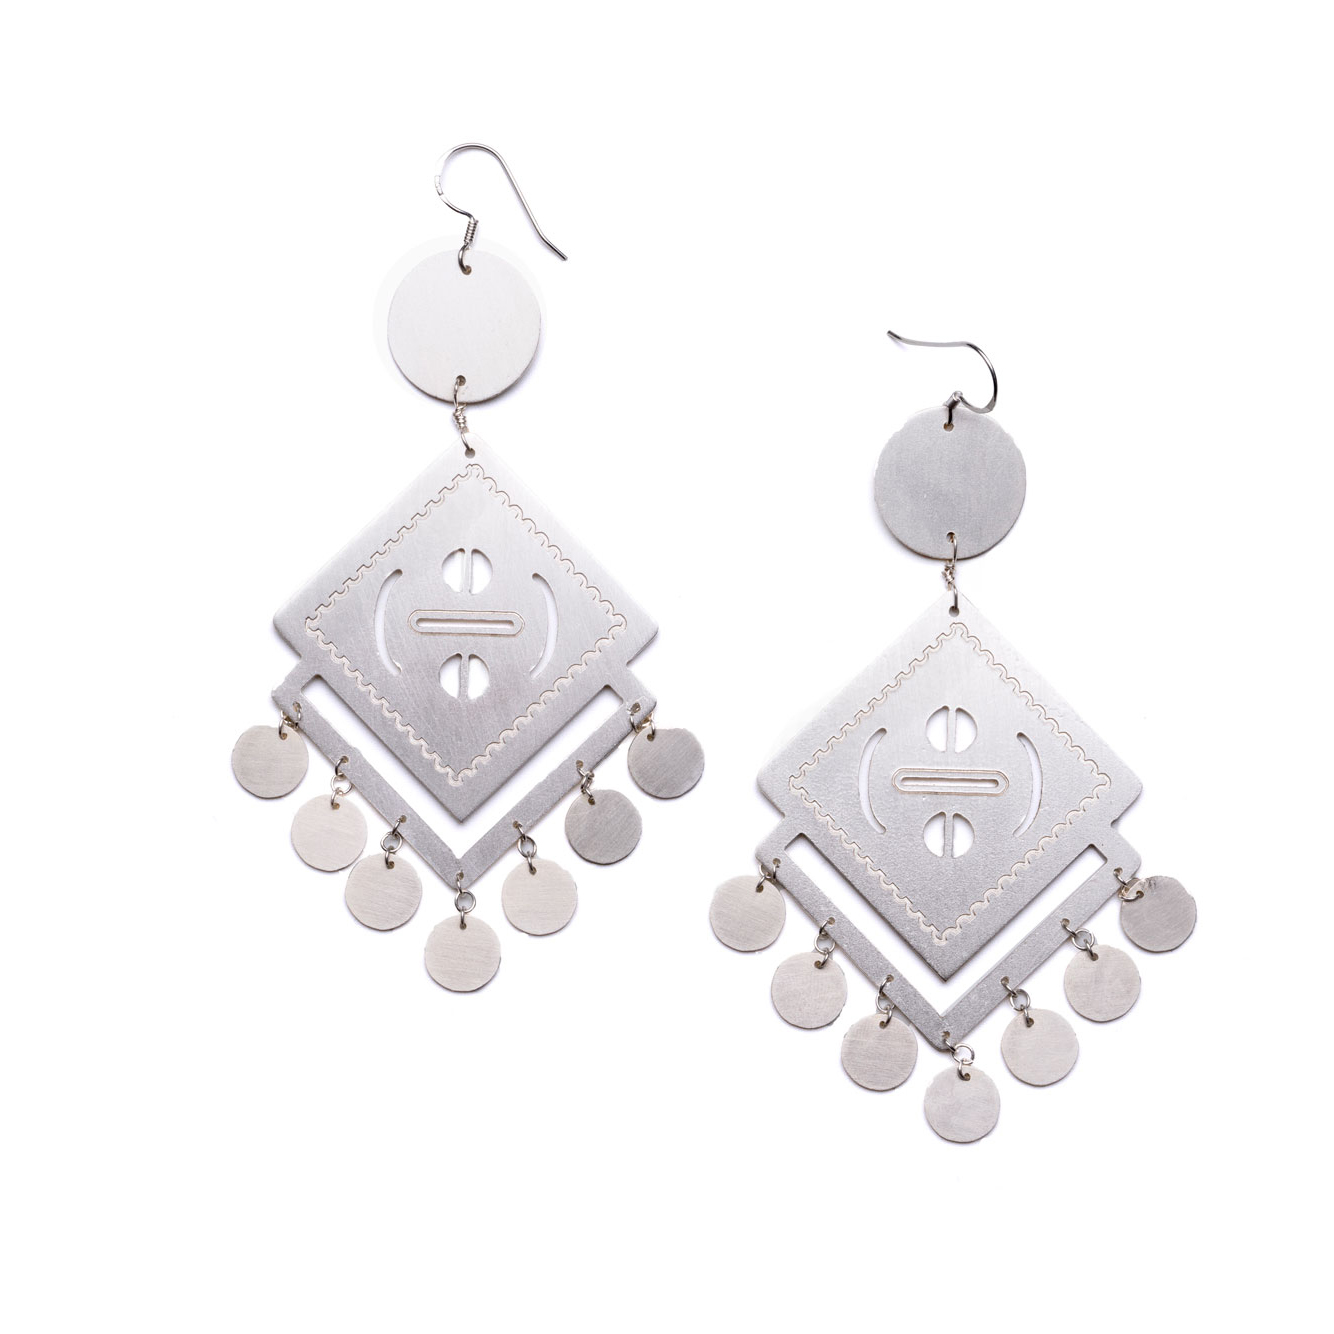 ethos-pelki-earrings